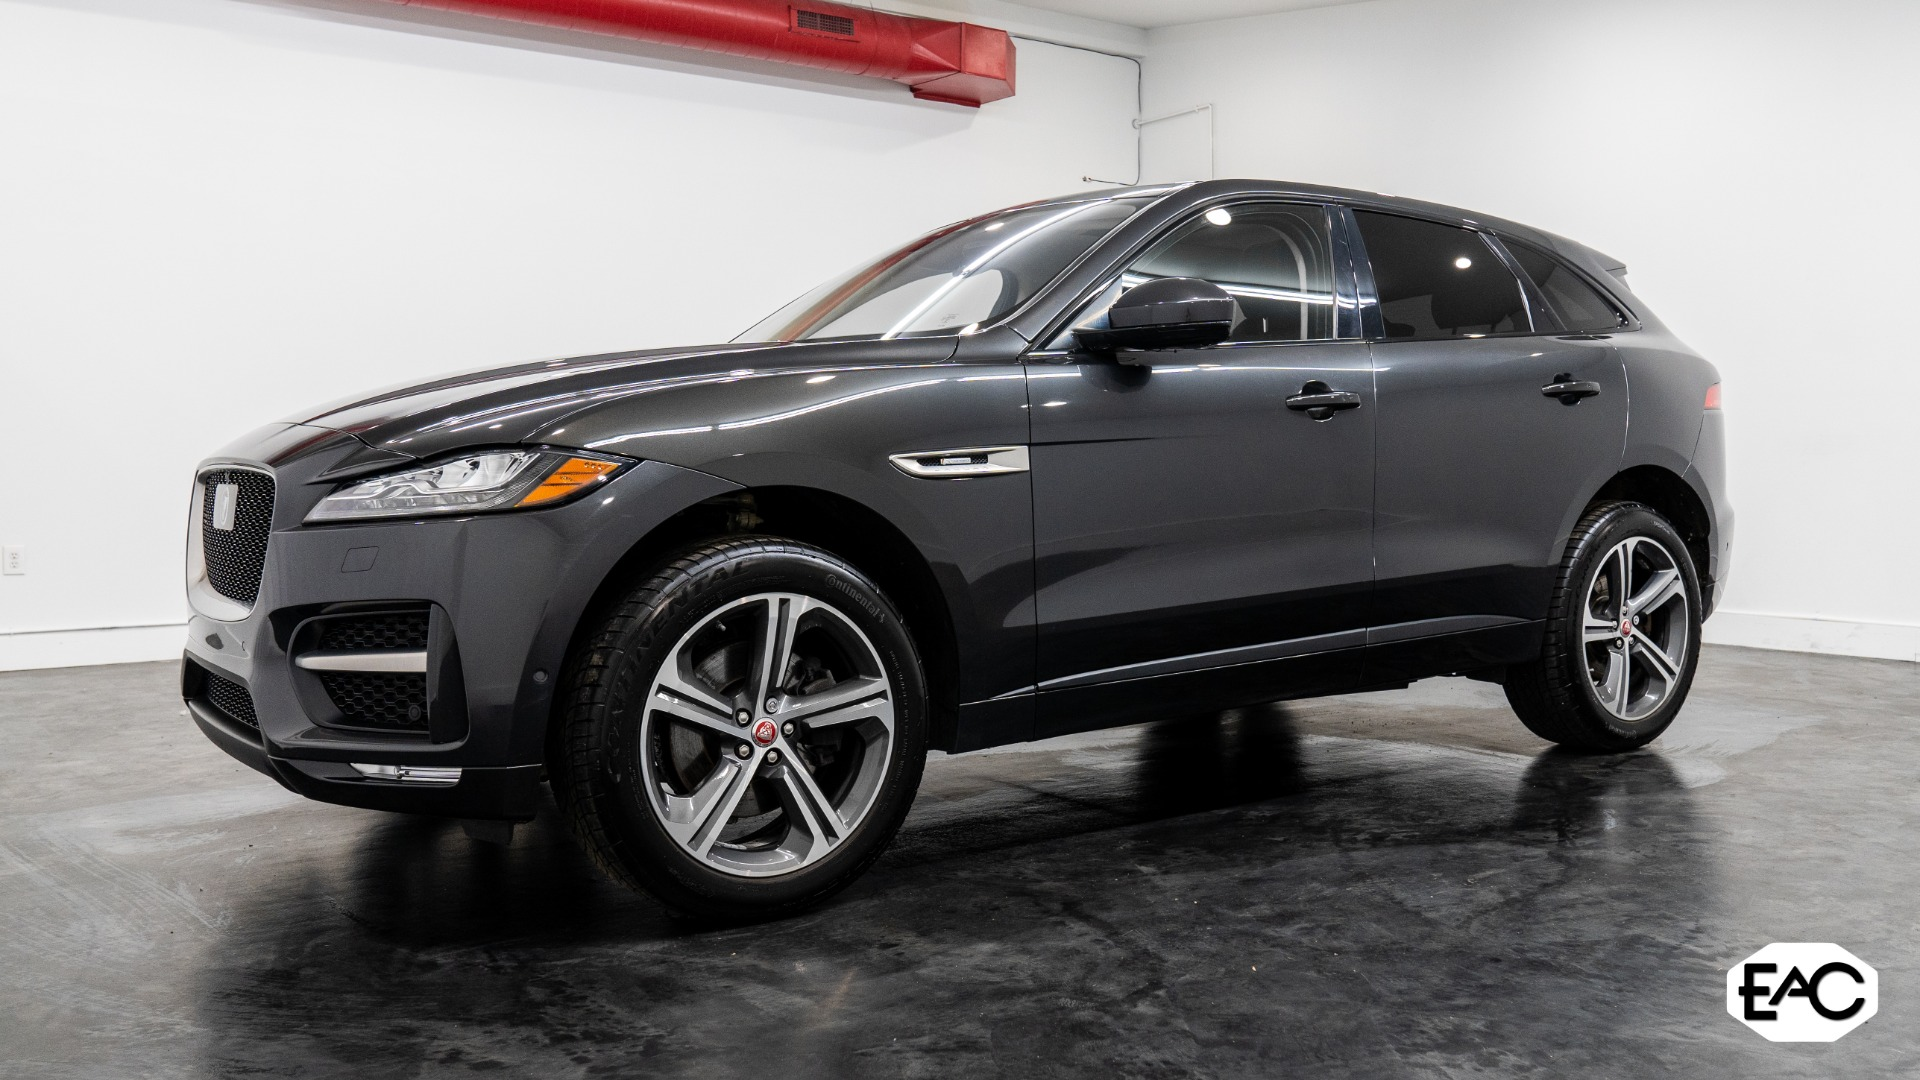 Used 2017 Jaguar F-PACE 35t R-Sport for sale $37,990 at Empire Auto Collection in Warren MI 48091 1